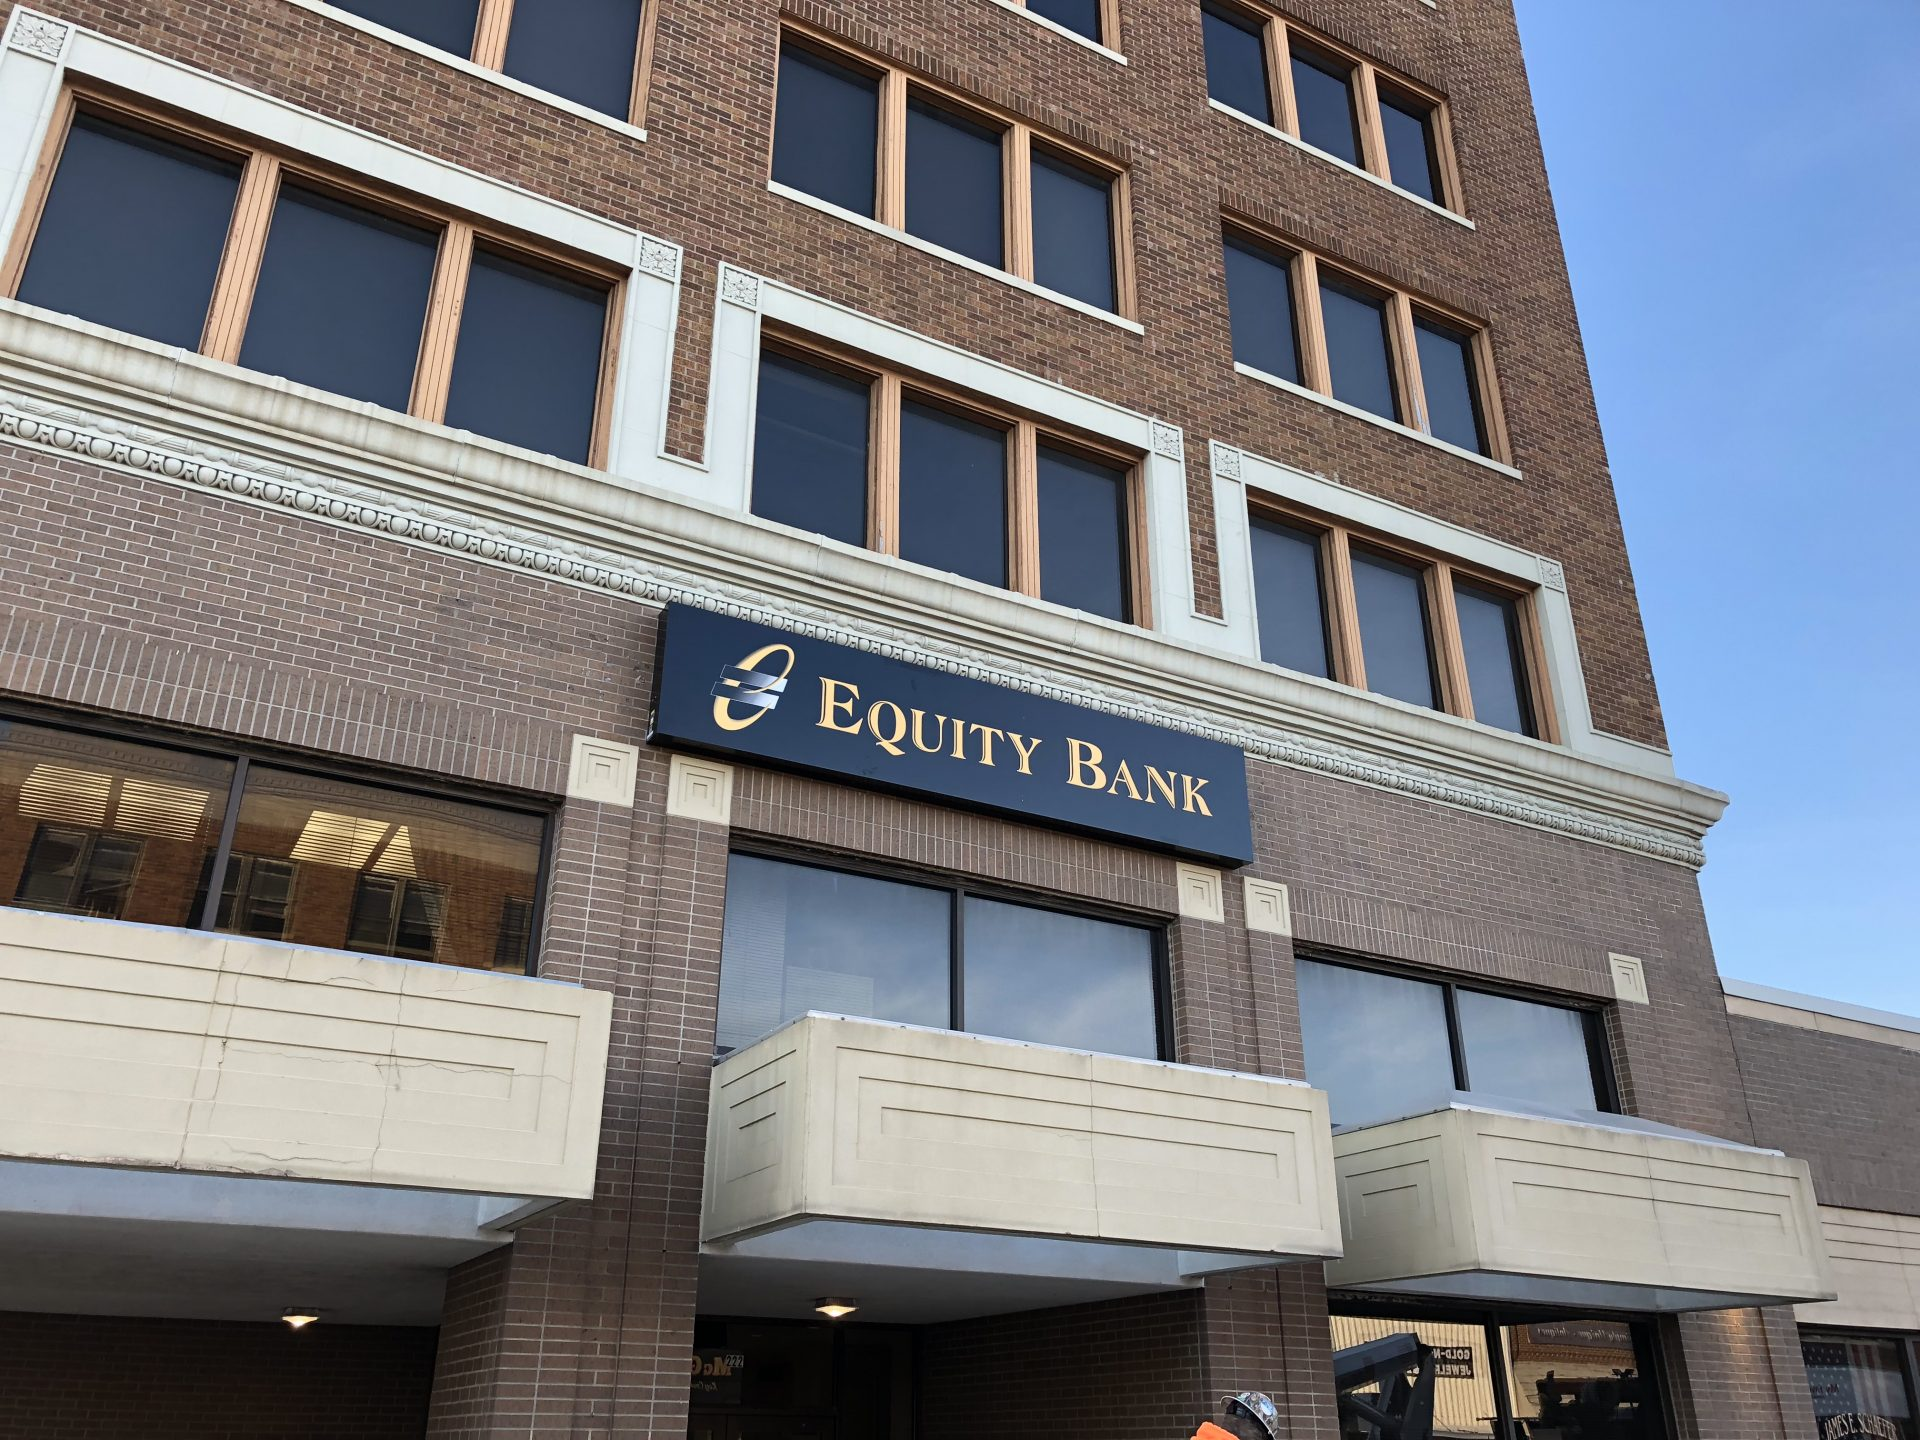 Equity Bank Ponca City Downtown branch exterior.